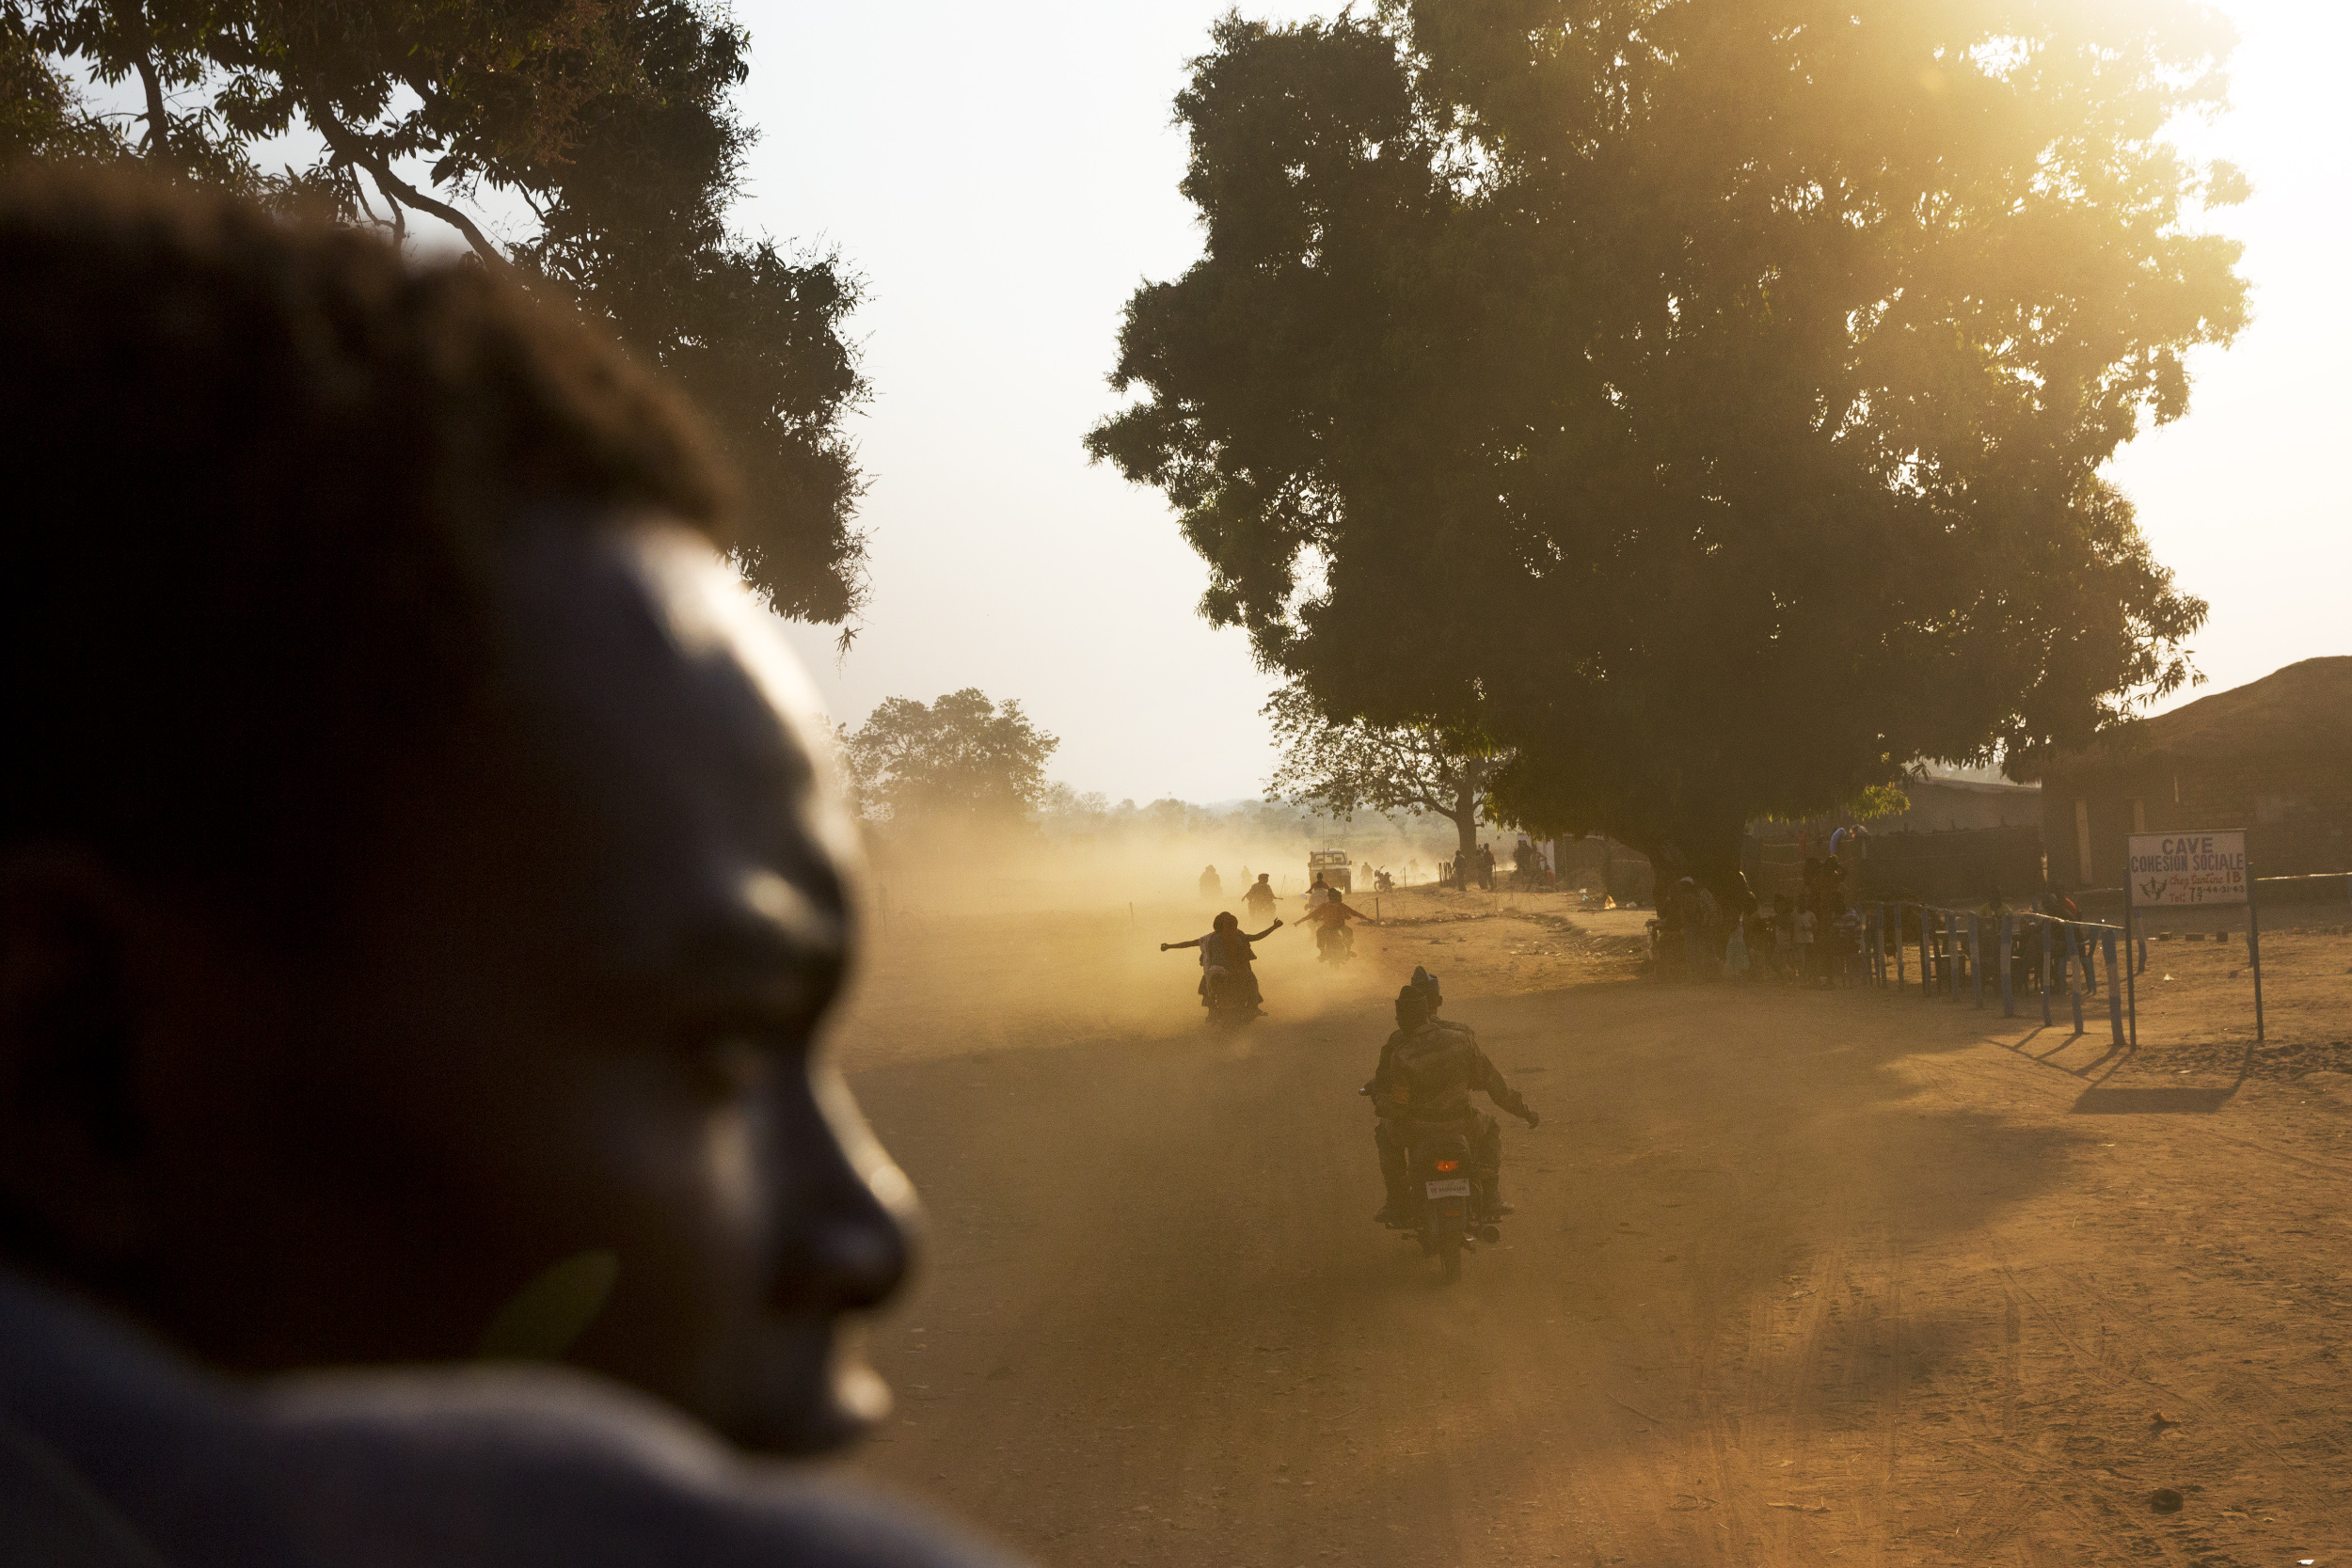 Supporters of candidate Constant Gouyomgbia Kongba Zeze (nicknamed GKZ) escort his vehicle to the airport in Kaga Bandoro, a town still controlled by ex-Séléka leaders, Central African Republic, Dec. 27, 2015.